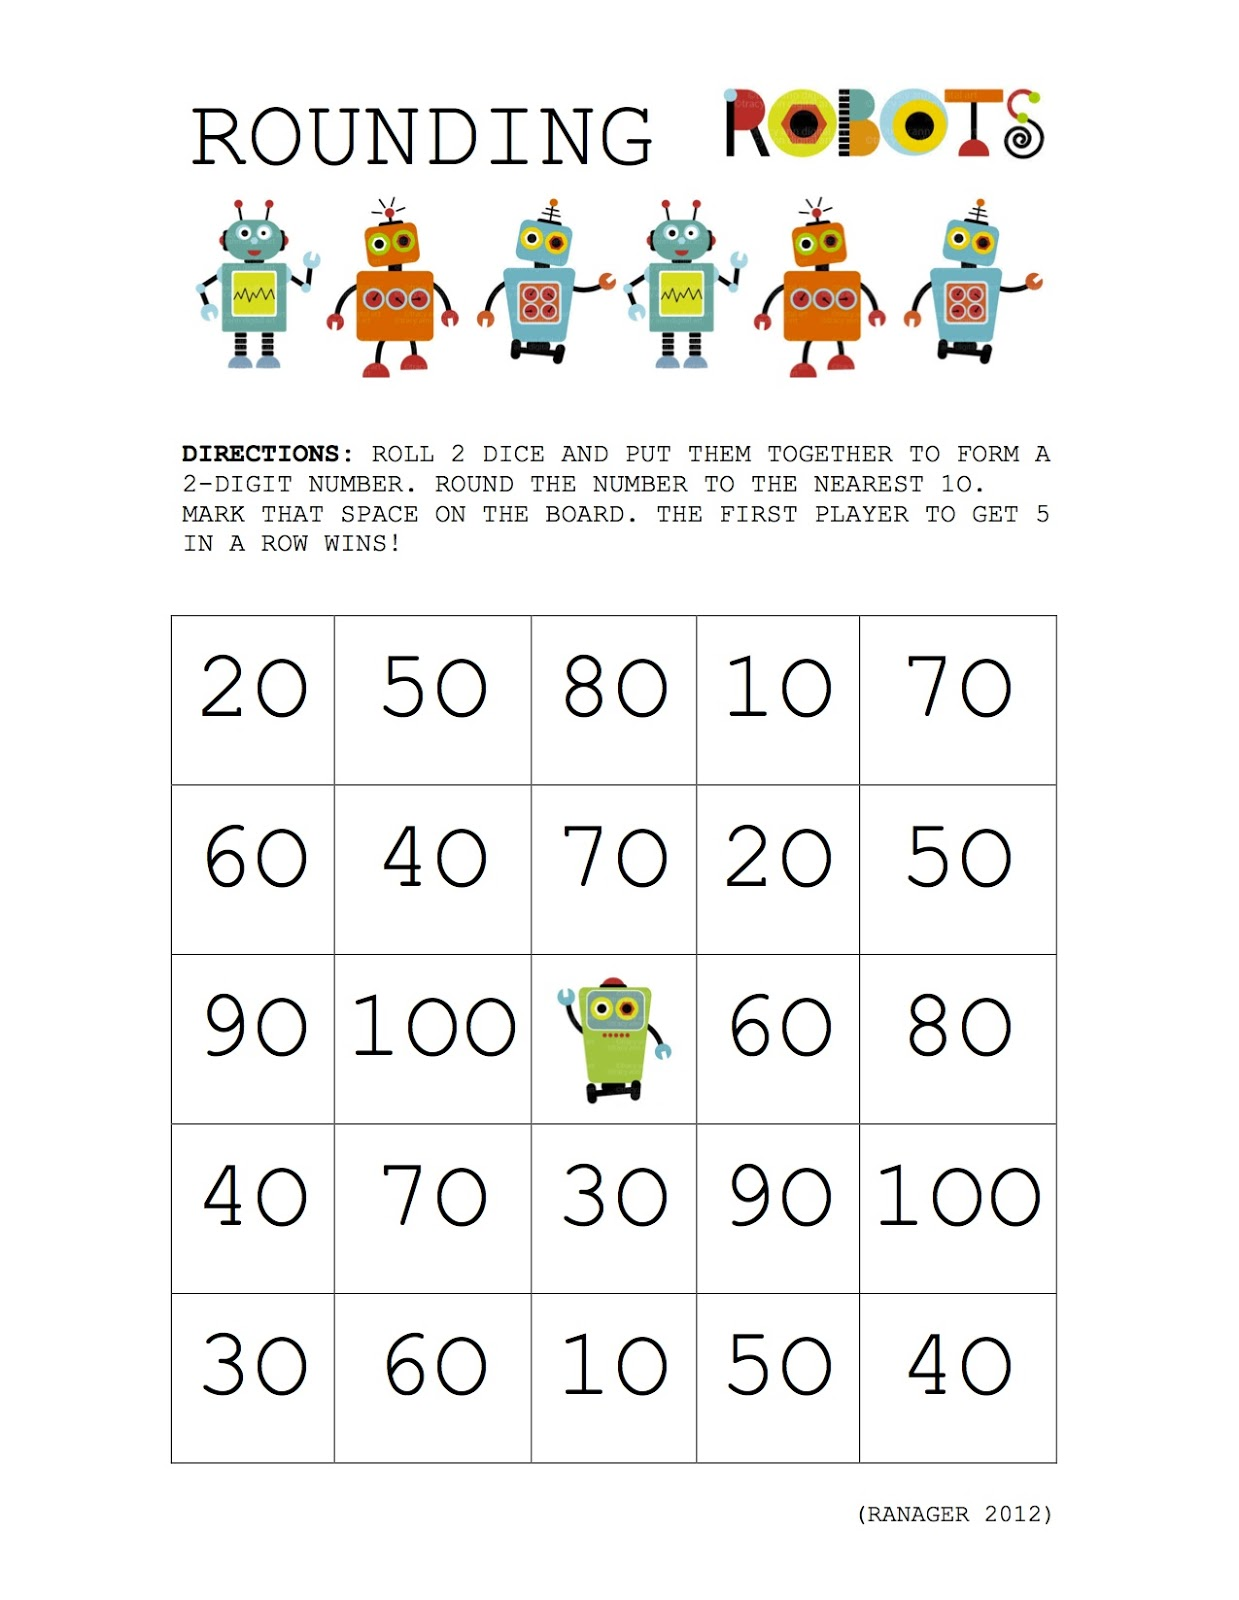 Worksheet Rounding Games For 3rd Grade Wosenly Free Worksheet – 3rd Grade Math Worksheets Rounding